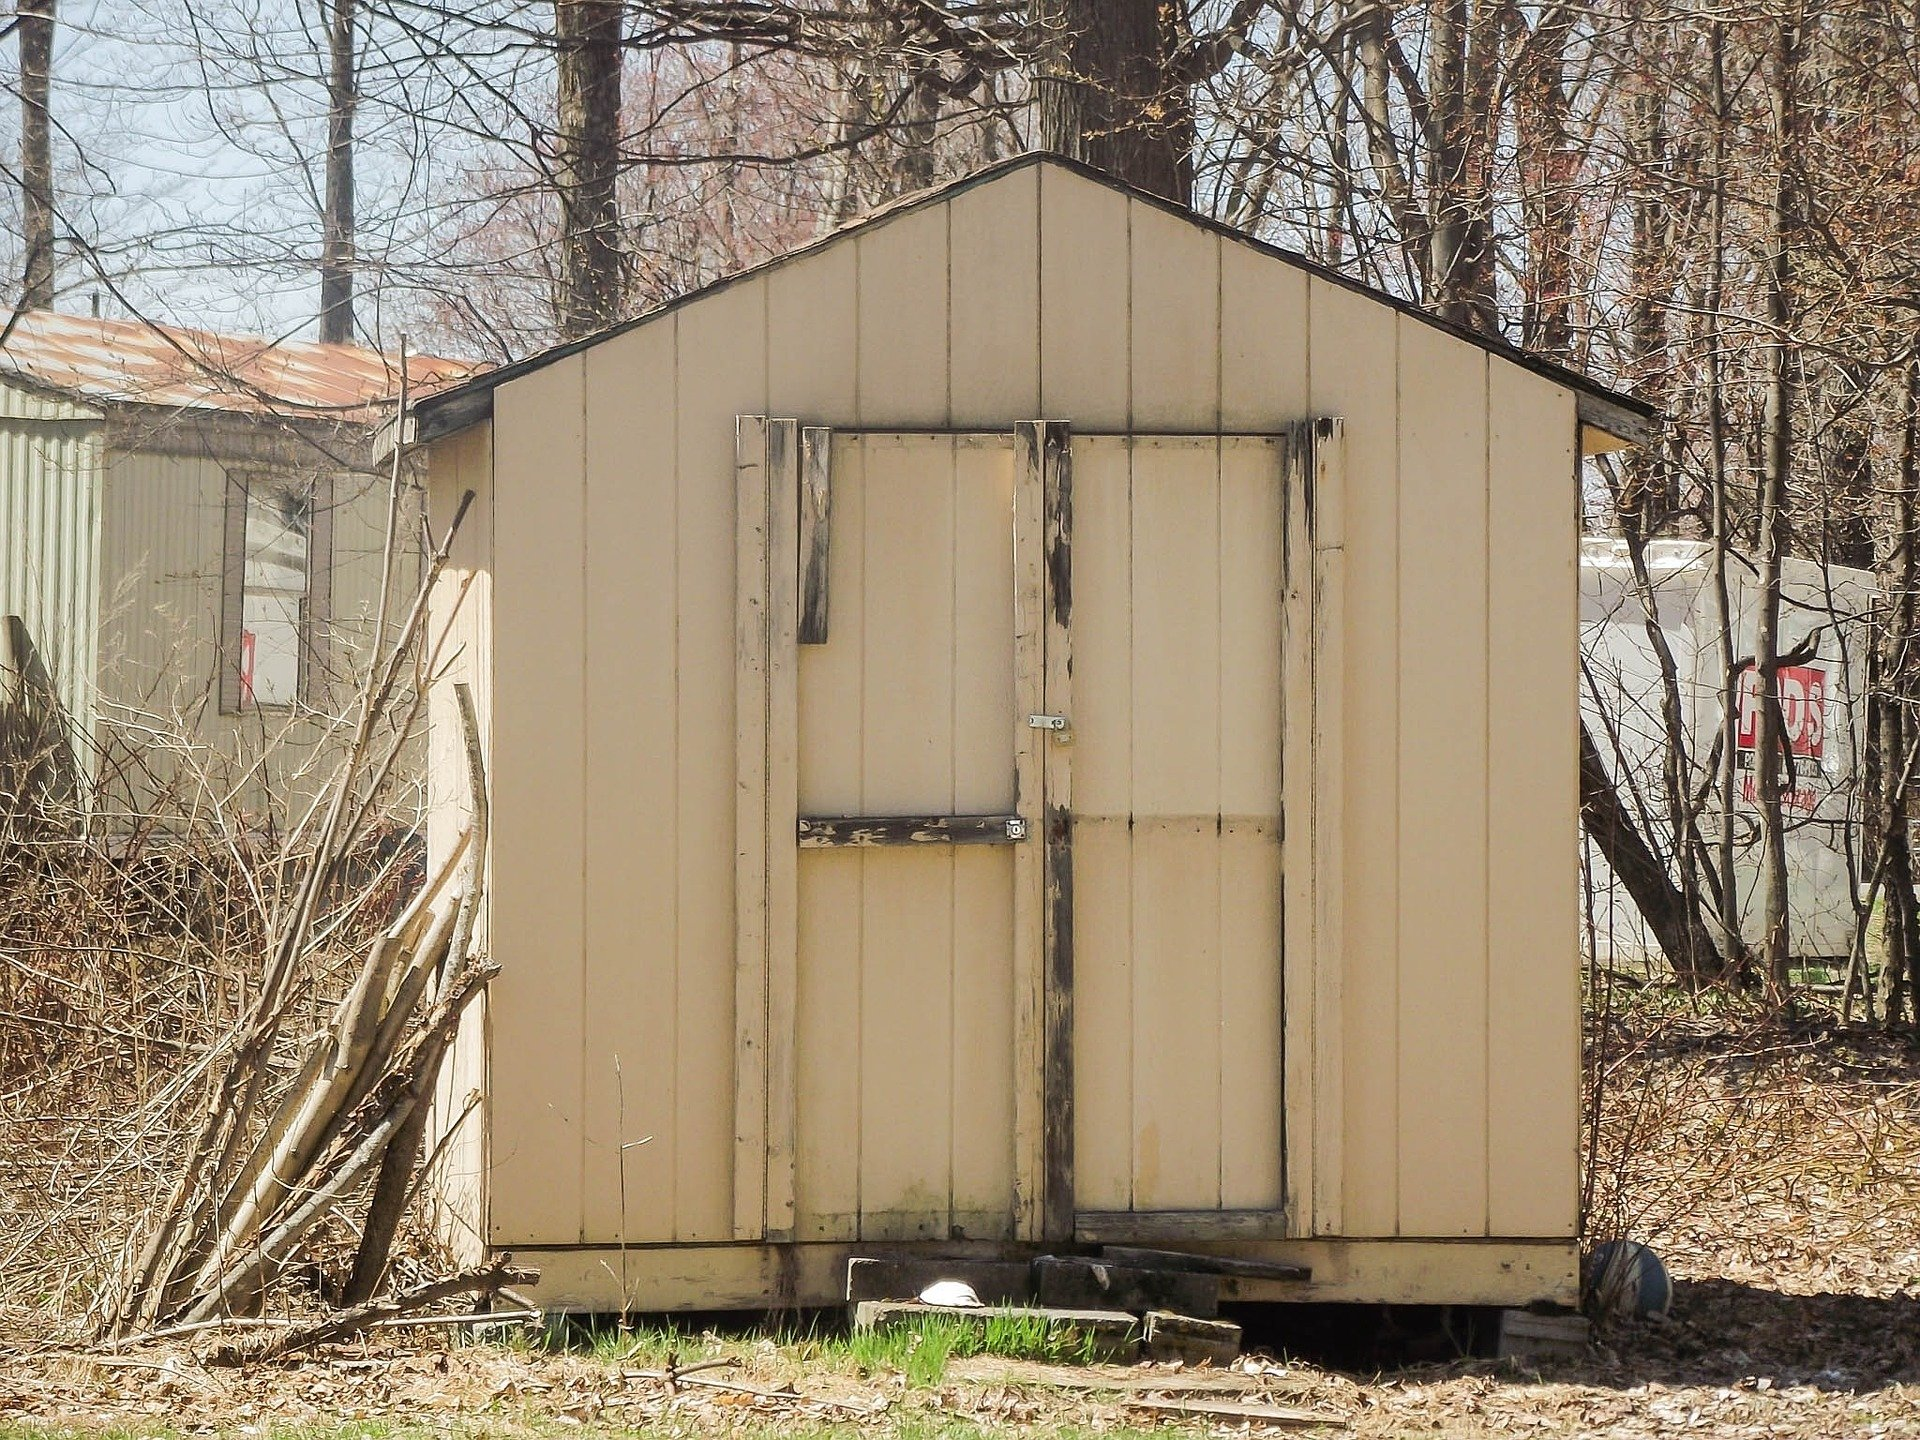 Dirty shed